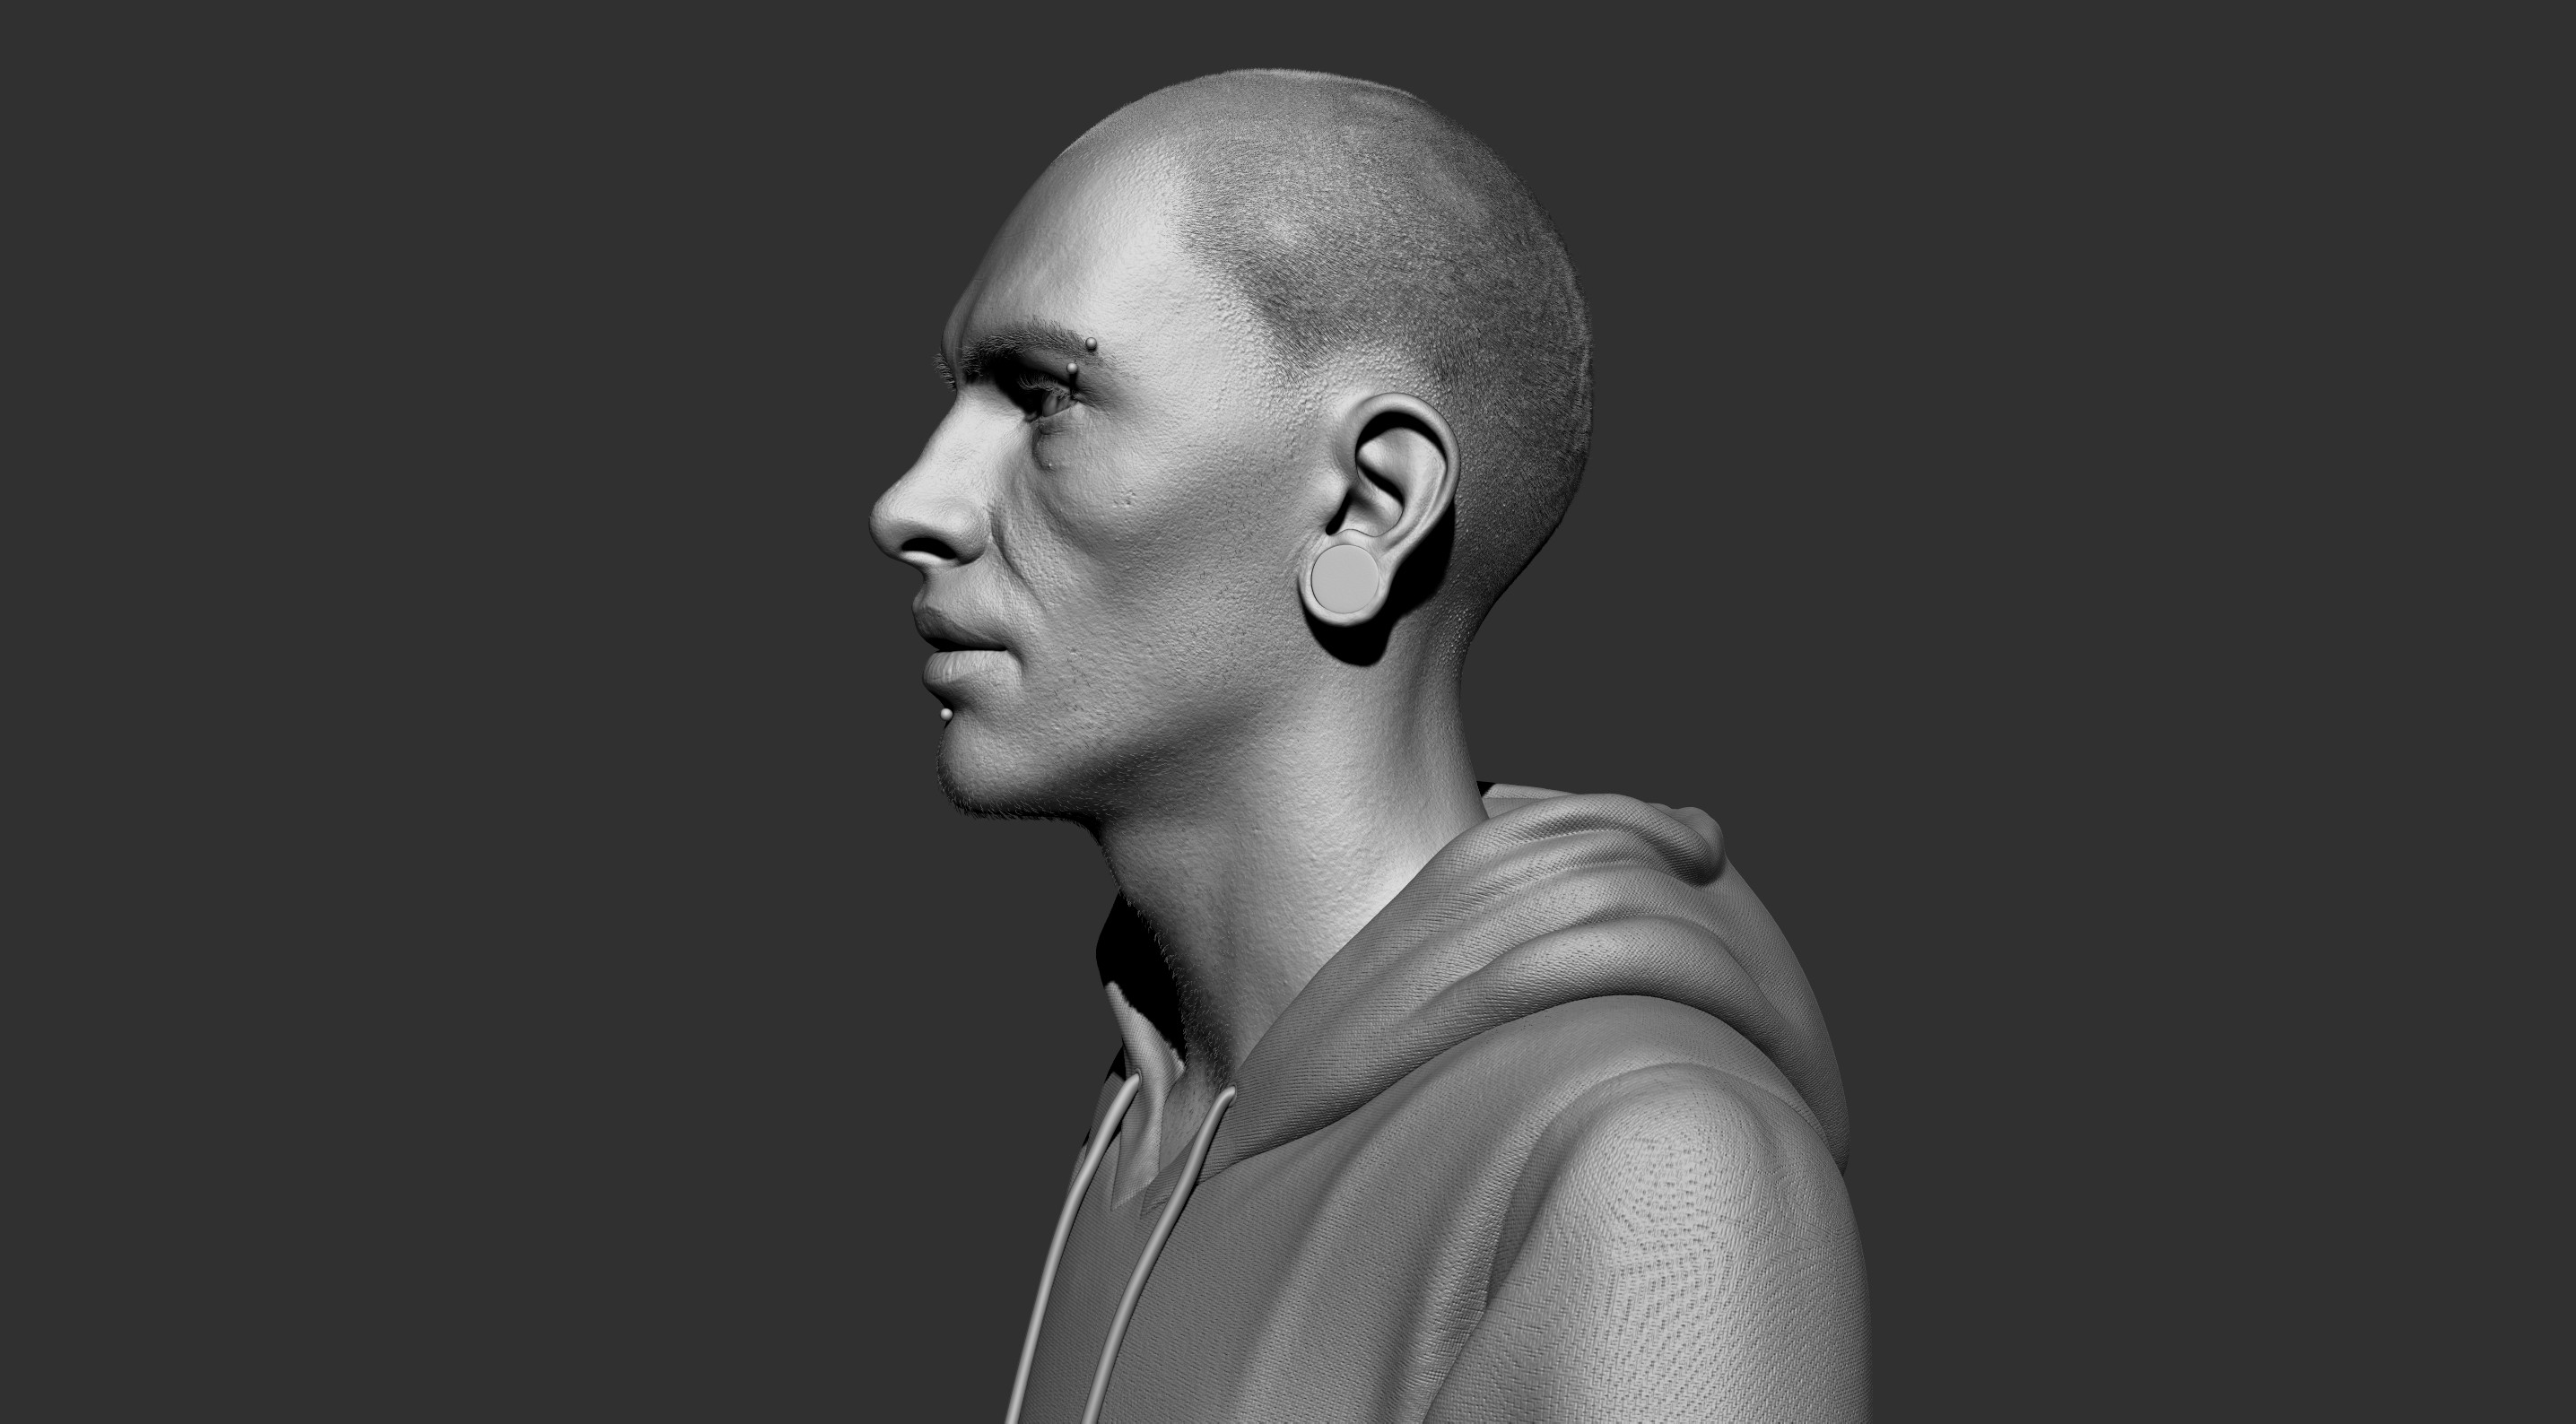 ZBrush high res mesh